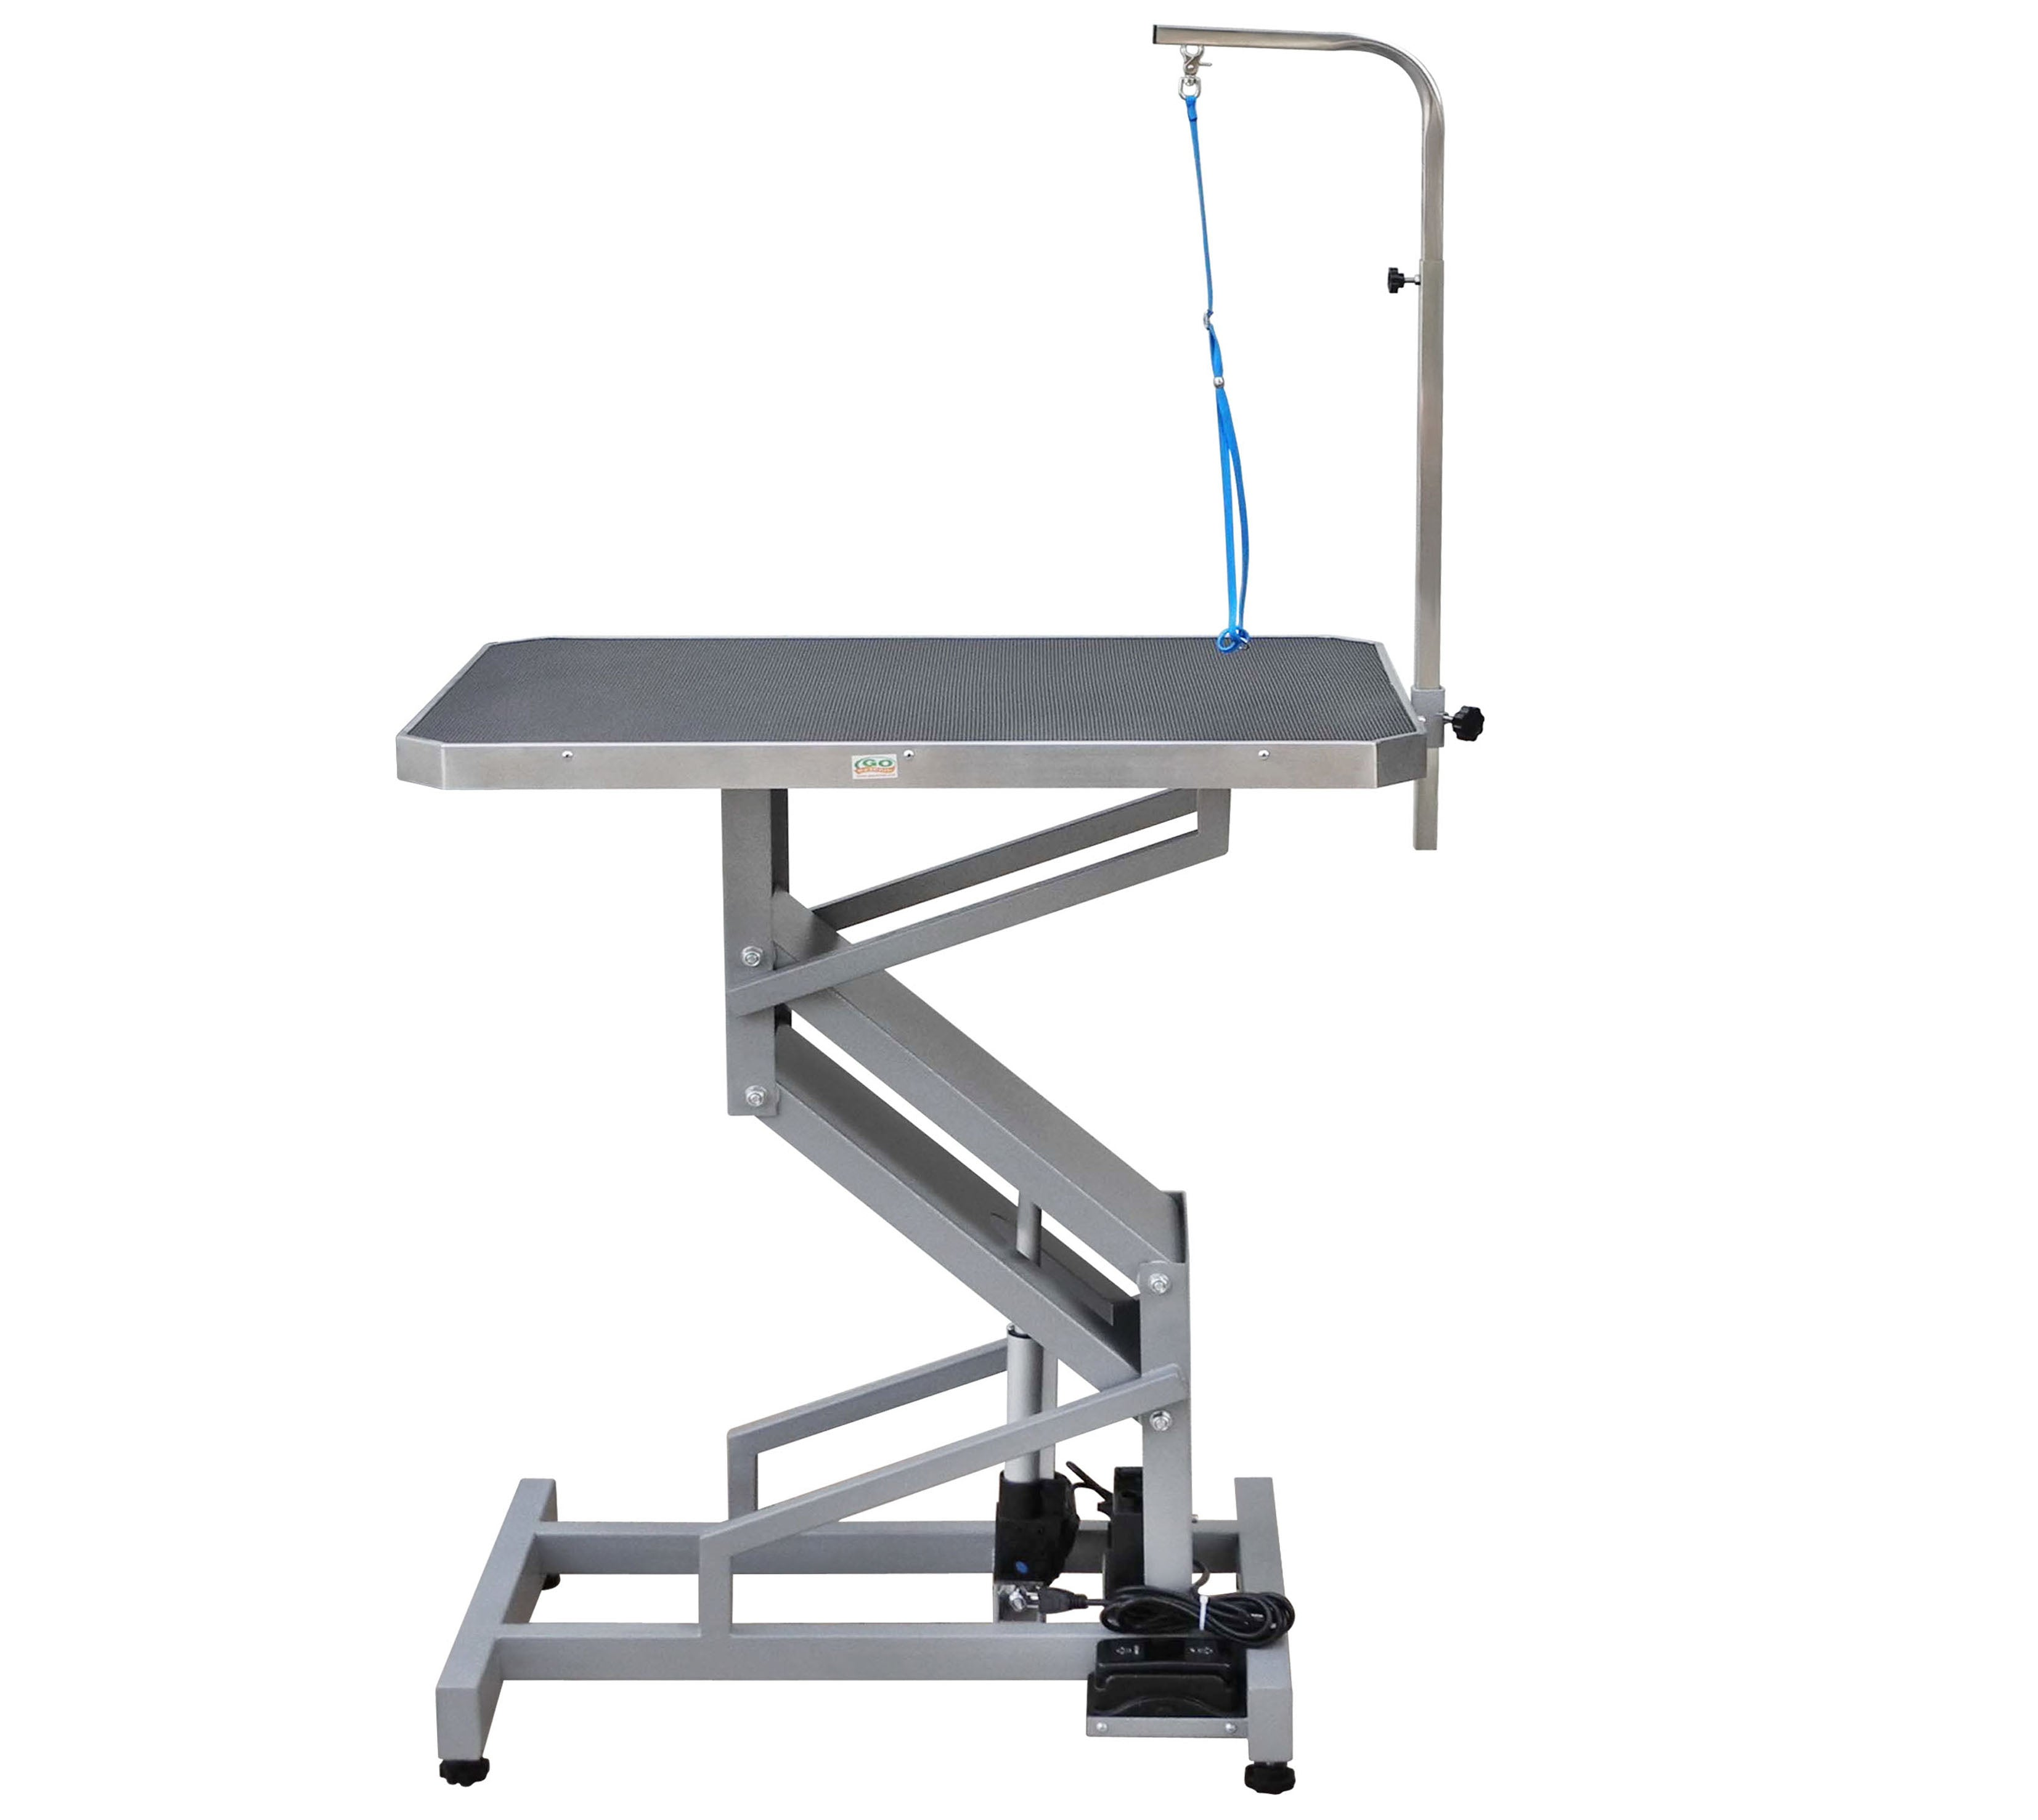 WilTec Hydraulic Grooming Table for Pets 60 kg Height Adjustable with Scratch Resistant Surface